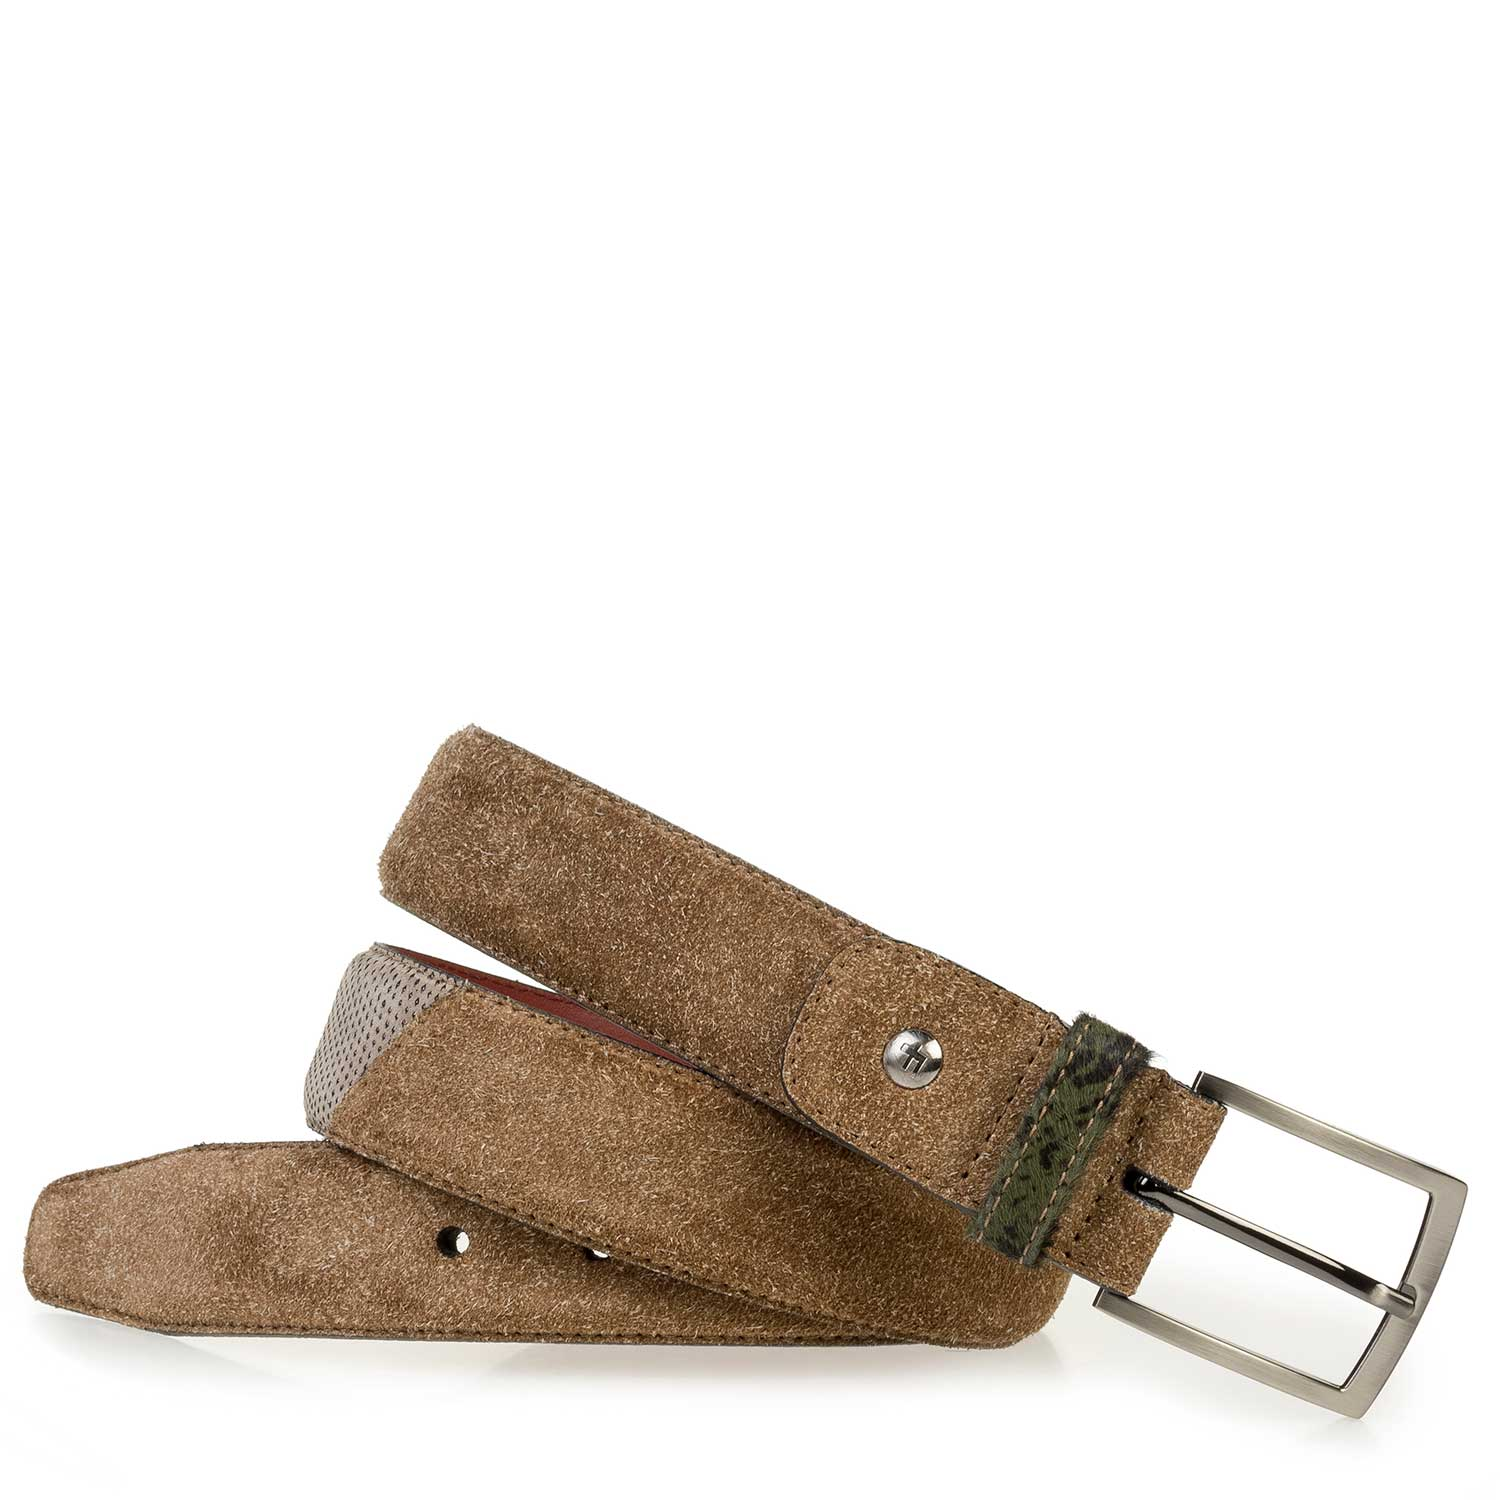 75188/29 - Brown rough suede leather belt